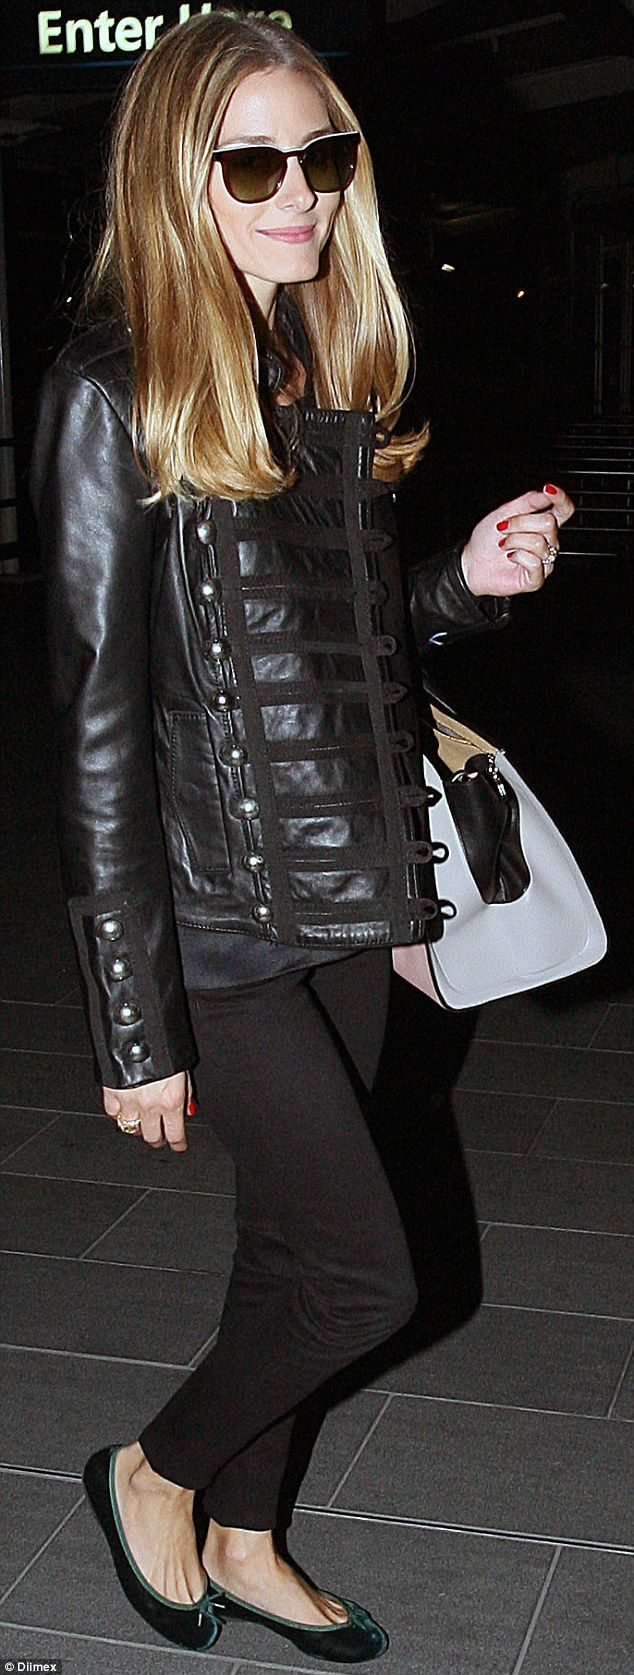 Fashionista: Olivia Palermo touched down in Sydney on Sunday night in a sleek all-black ensemble